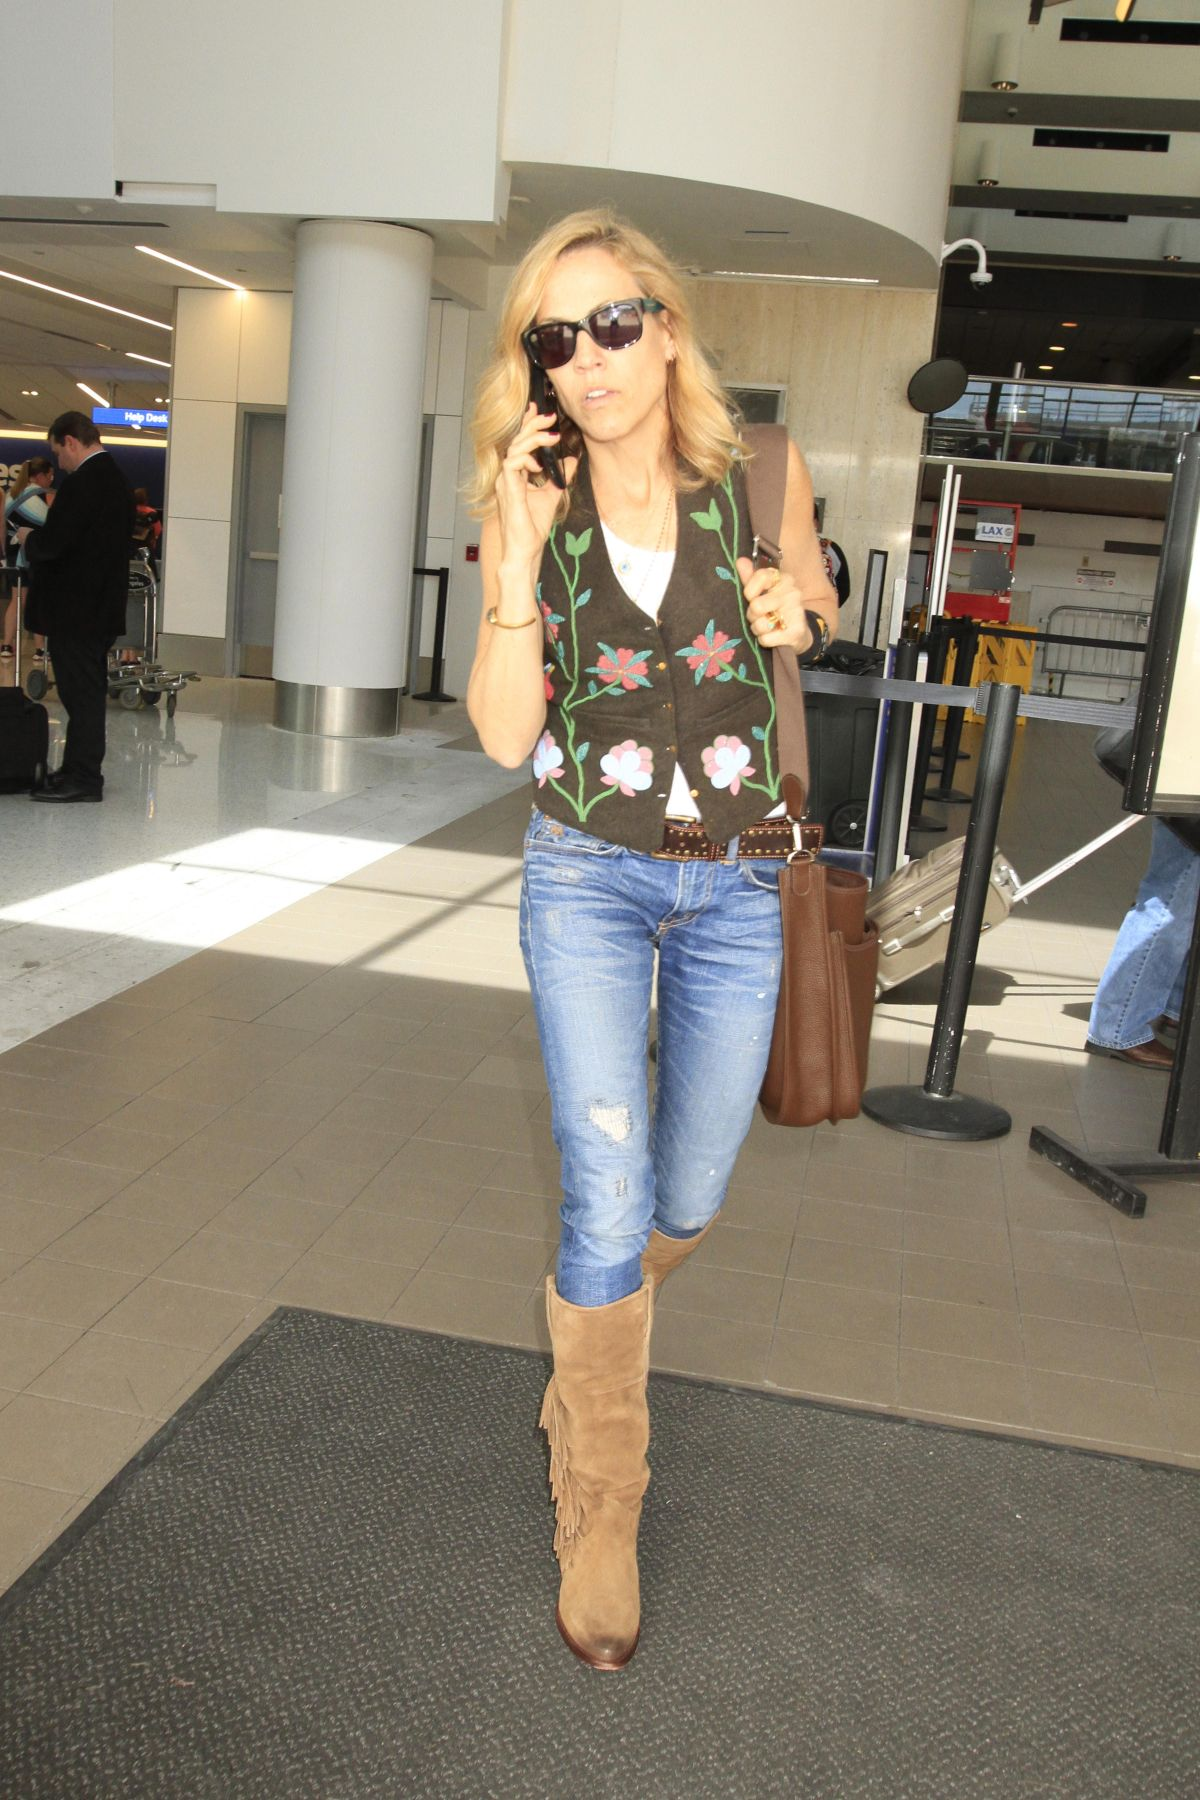 SHERYL CROW at LAX Airport in Los Angeles 03/10/2016